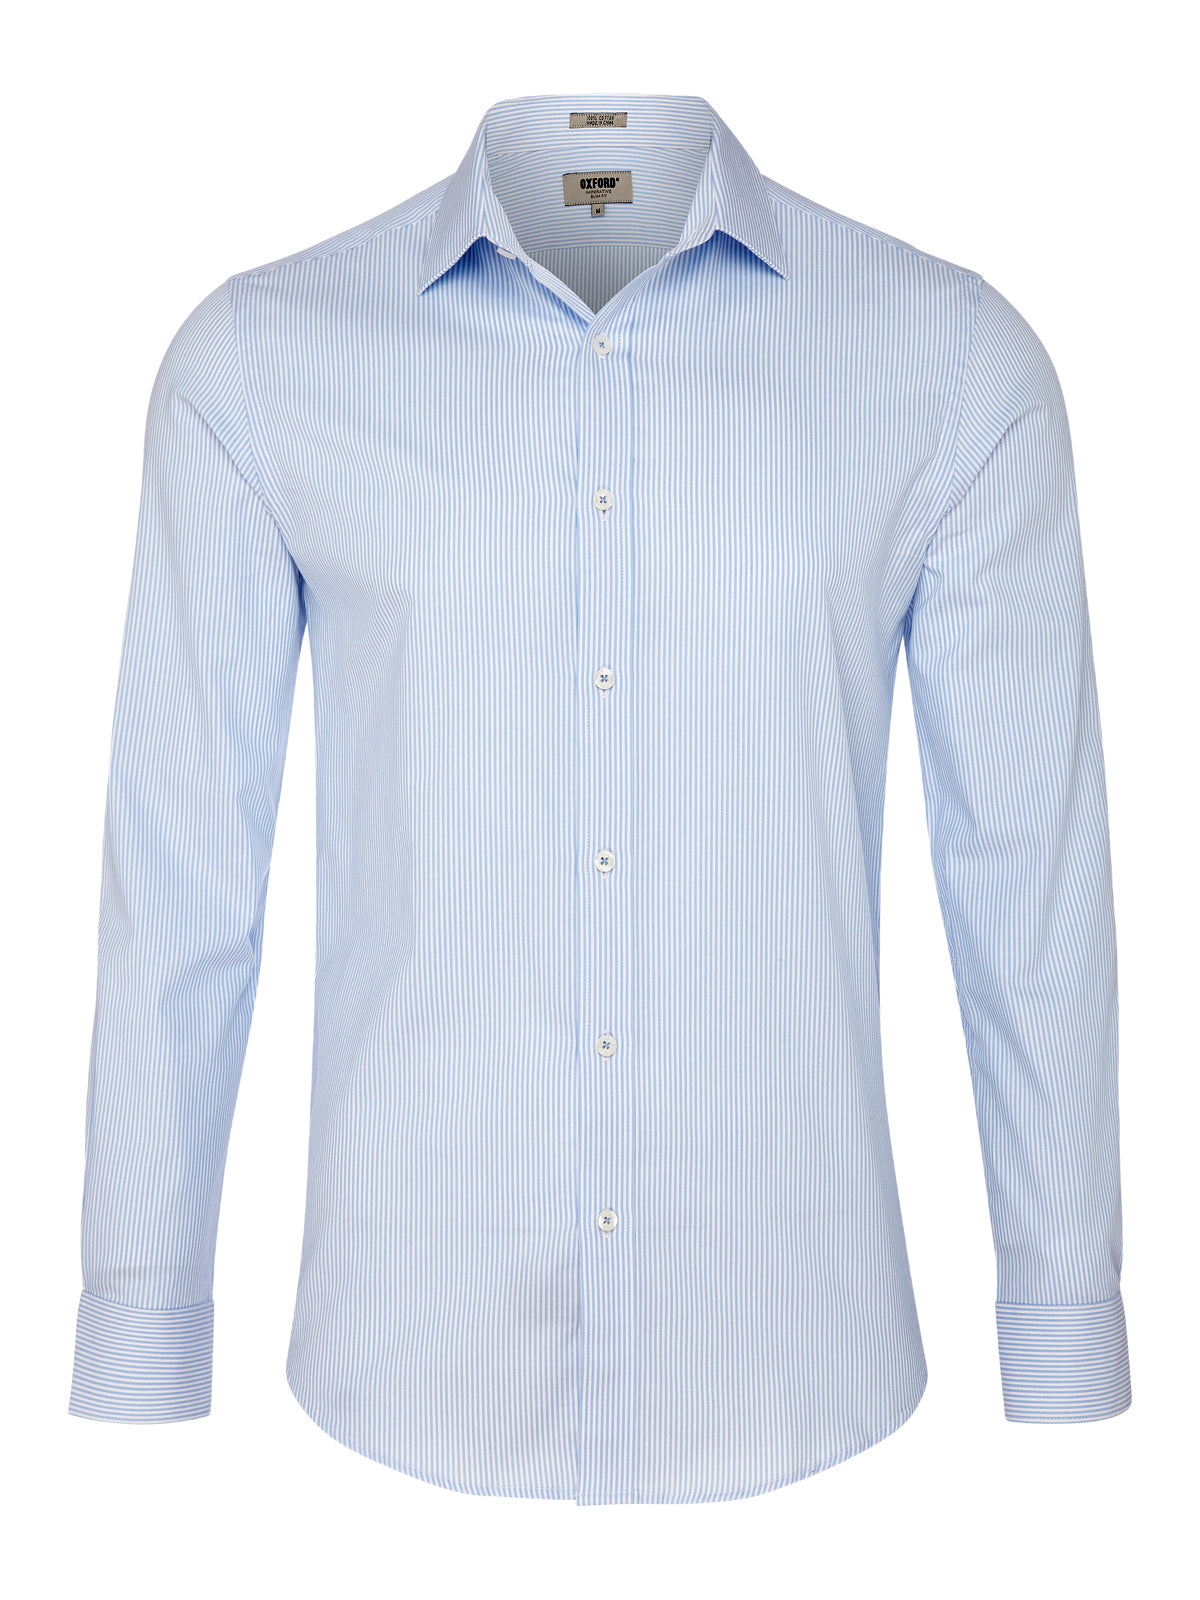 IMPERATIVE STRIPED SHIRT BLUE